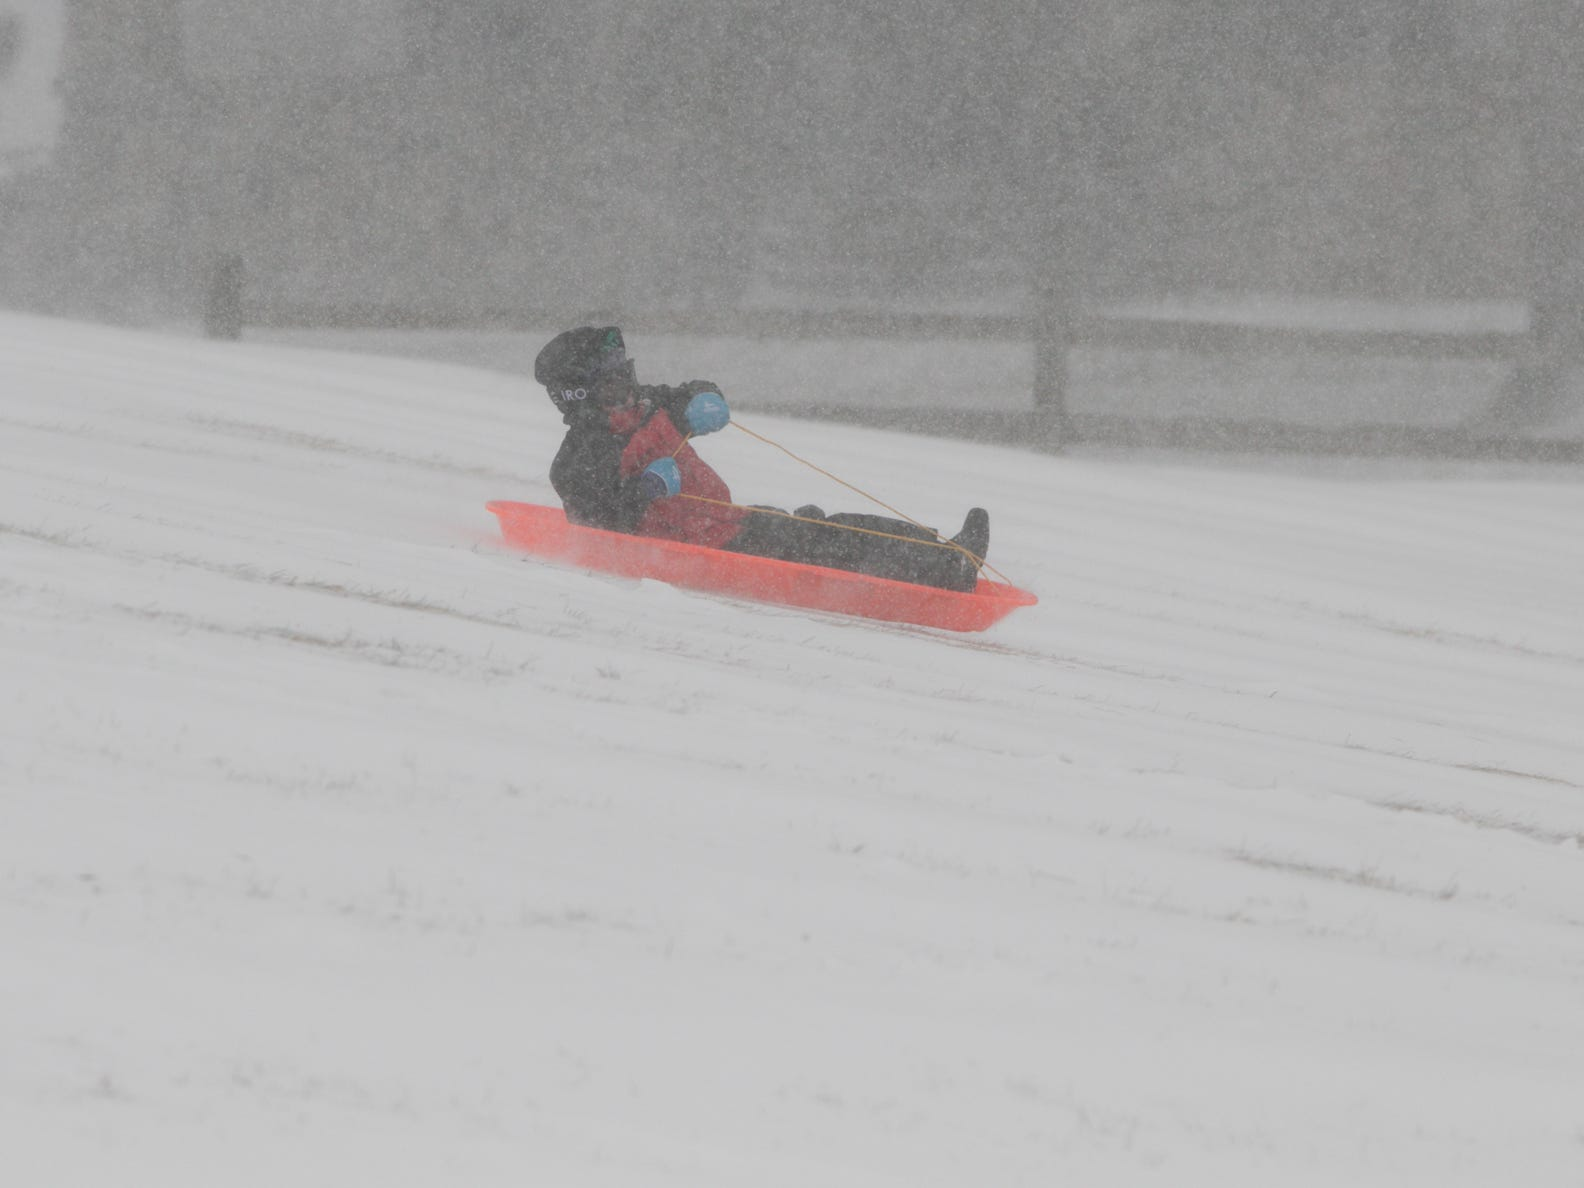 5-year-old Jack Martin slides down the sledding hill at Genoa Township Park in the middle of the snowstorm Monday, Jan. 28, 2019. He and his twin brother Luke and dad Matthew of Howell made the best of the cold weather and snow.